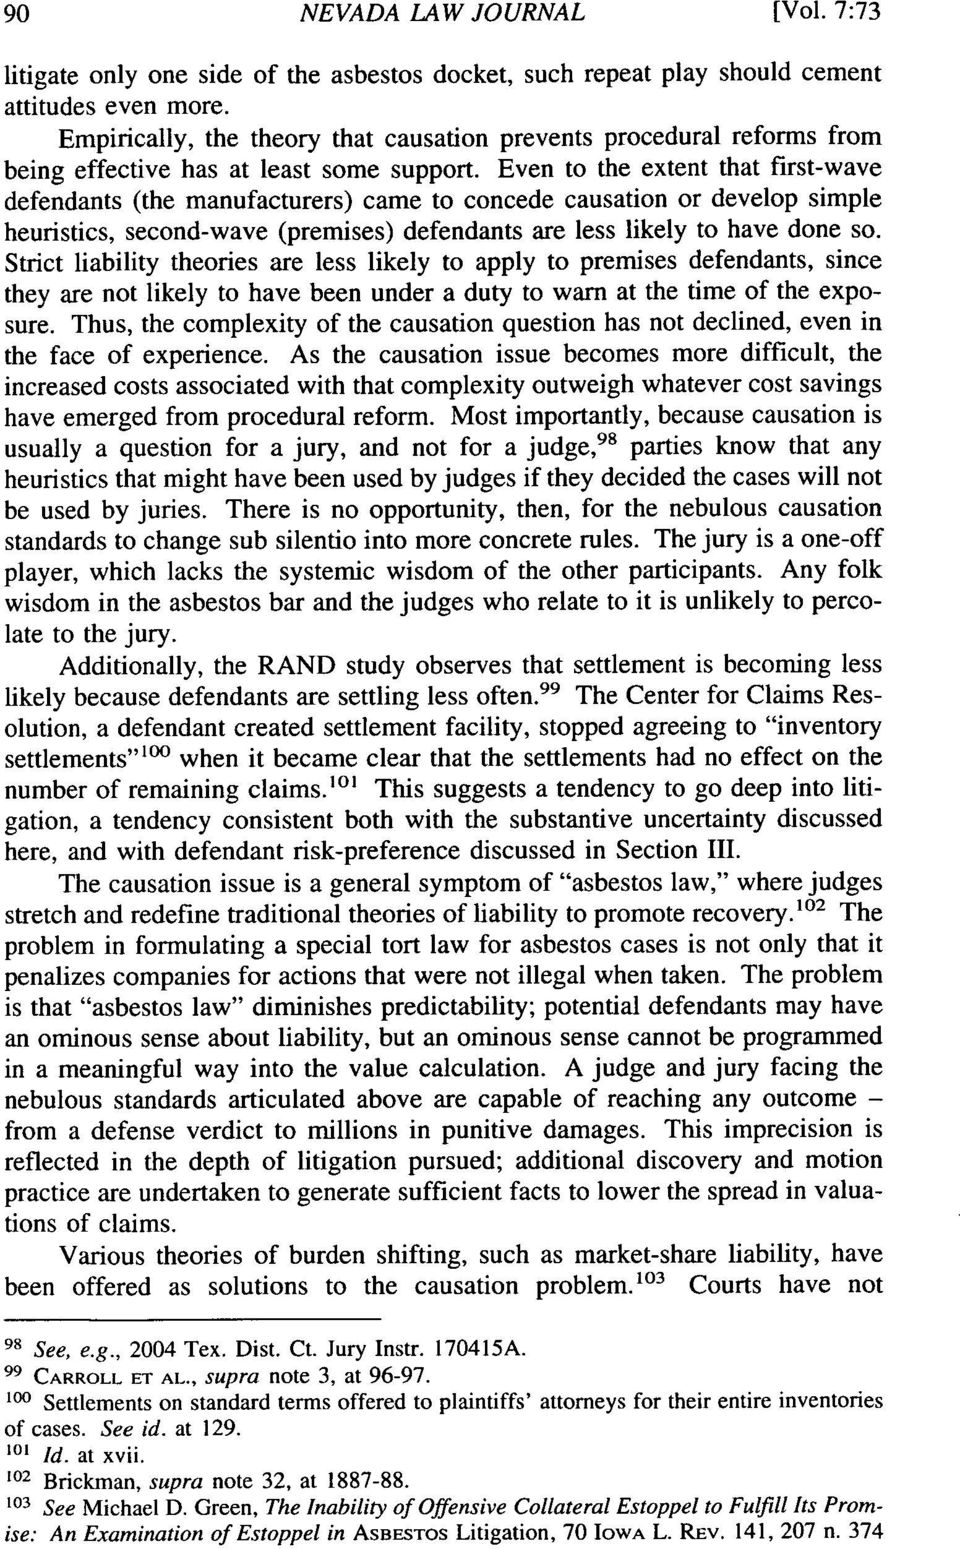 Even to the extent that first-wave defendants (the manufacturers) came to concede causation or develop simple heuristics, second-wave (premises) defendants are less likely to have done so.